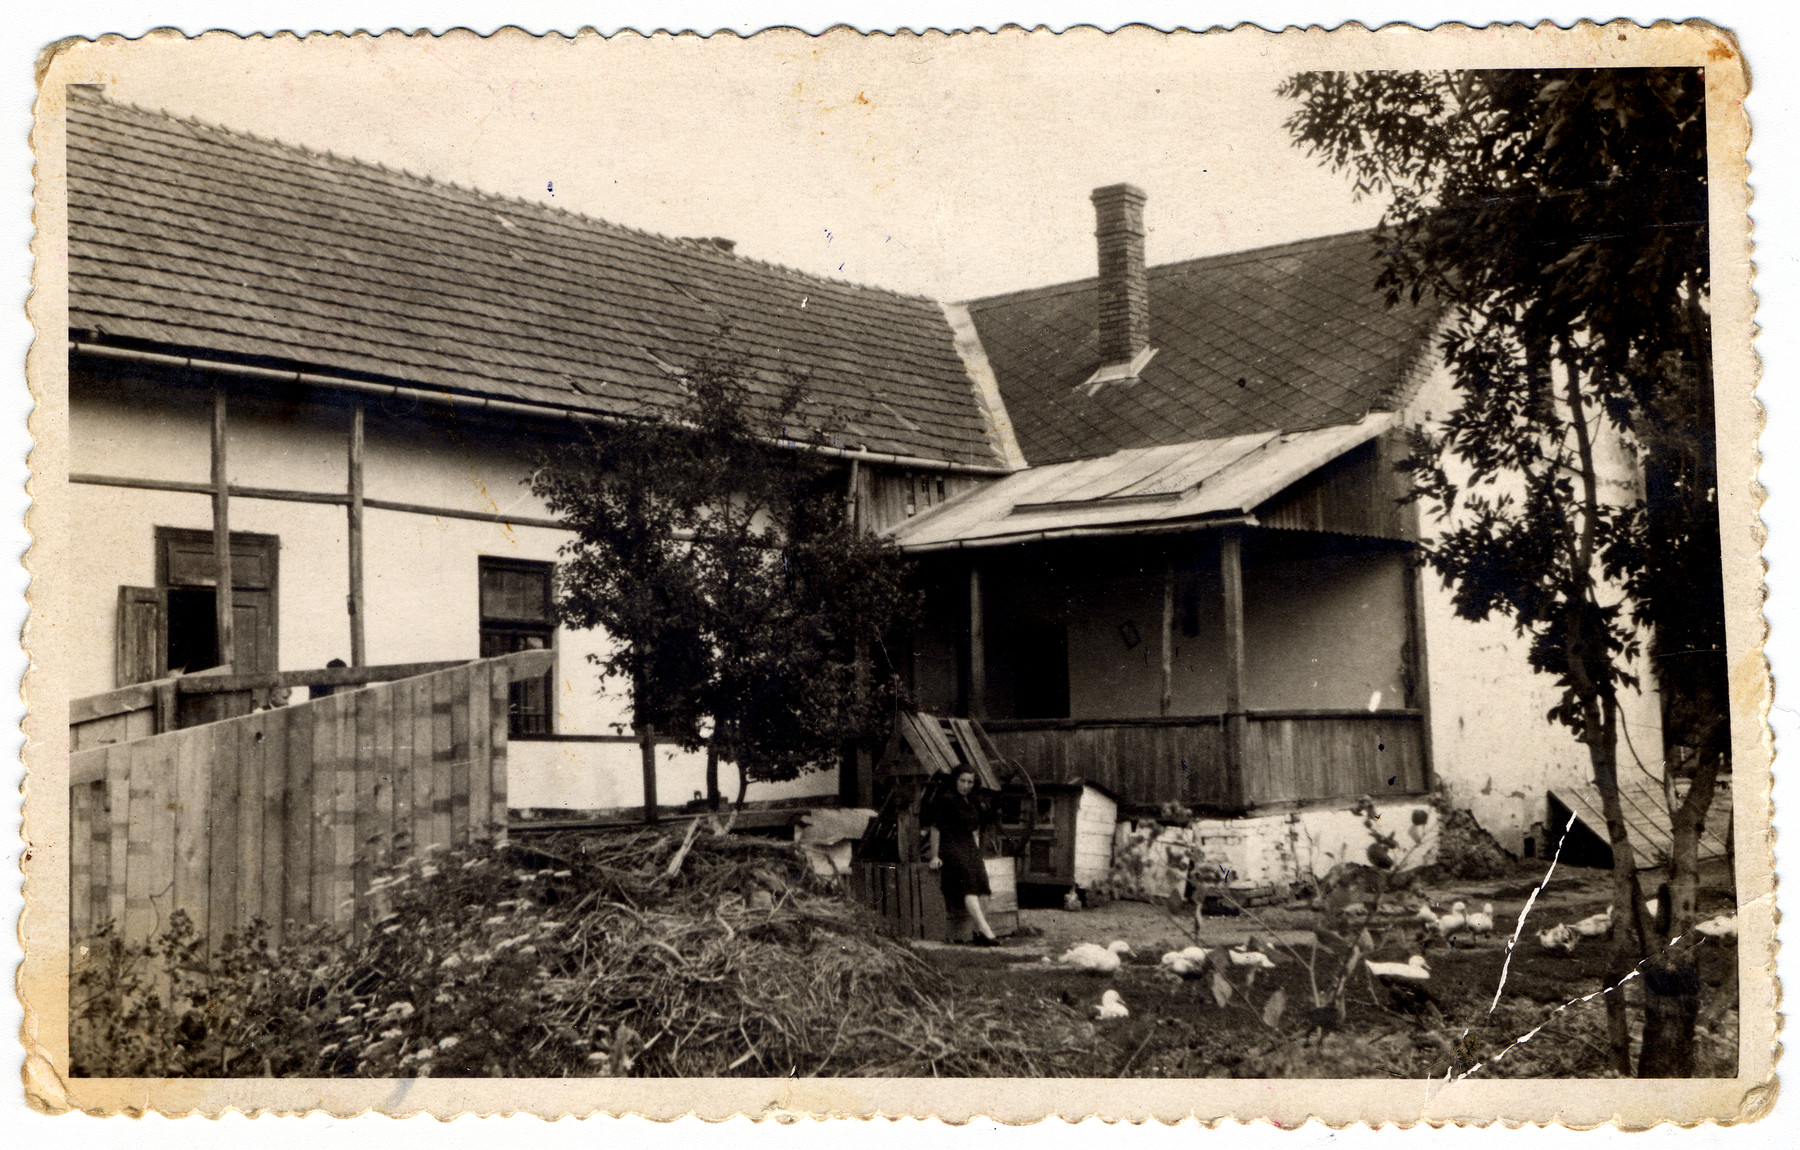 Malvina Grunfeld visits her family's former home in Trebisov after the war.  She worked there for a few months after the war but never was able to regain the home.  The porch had a retractable roof that also served as a sukkah.